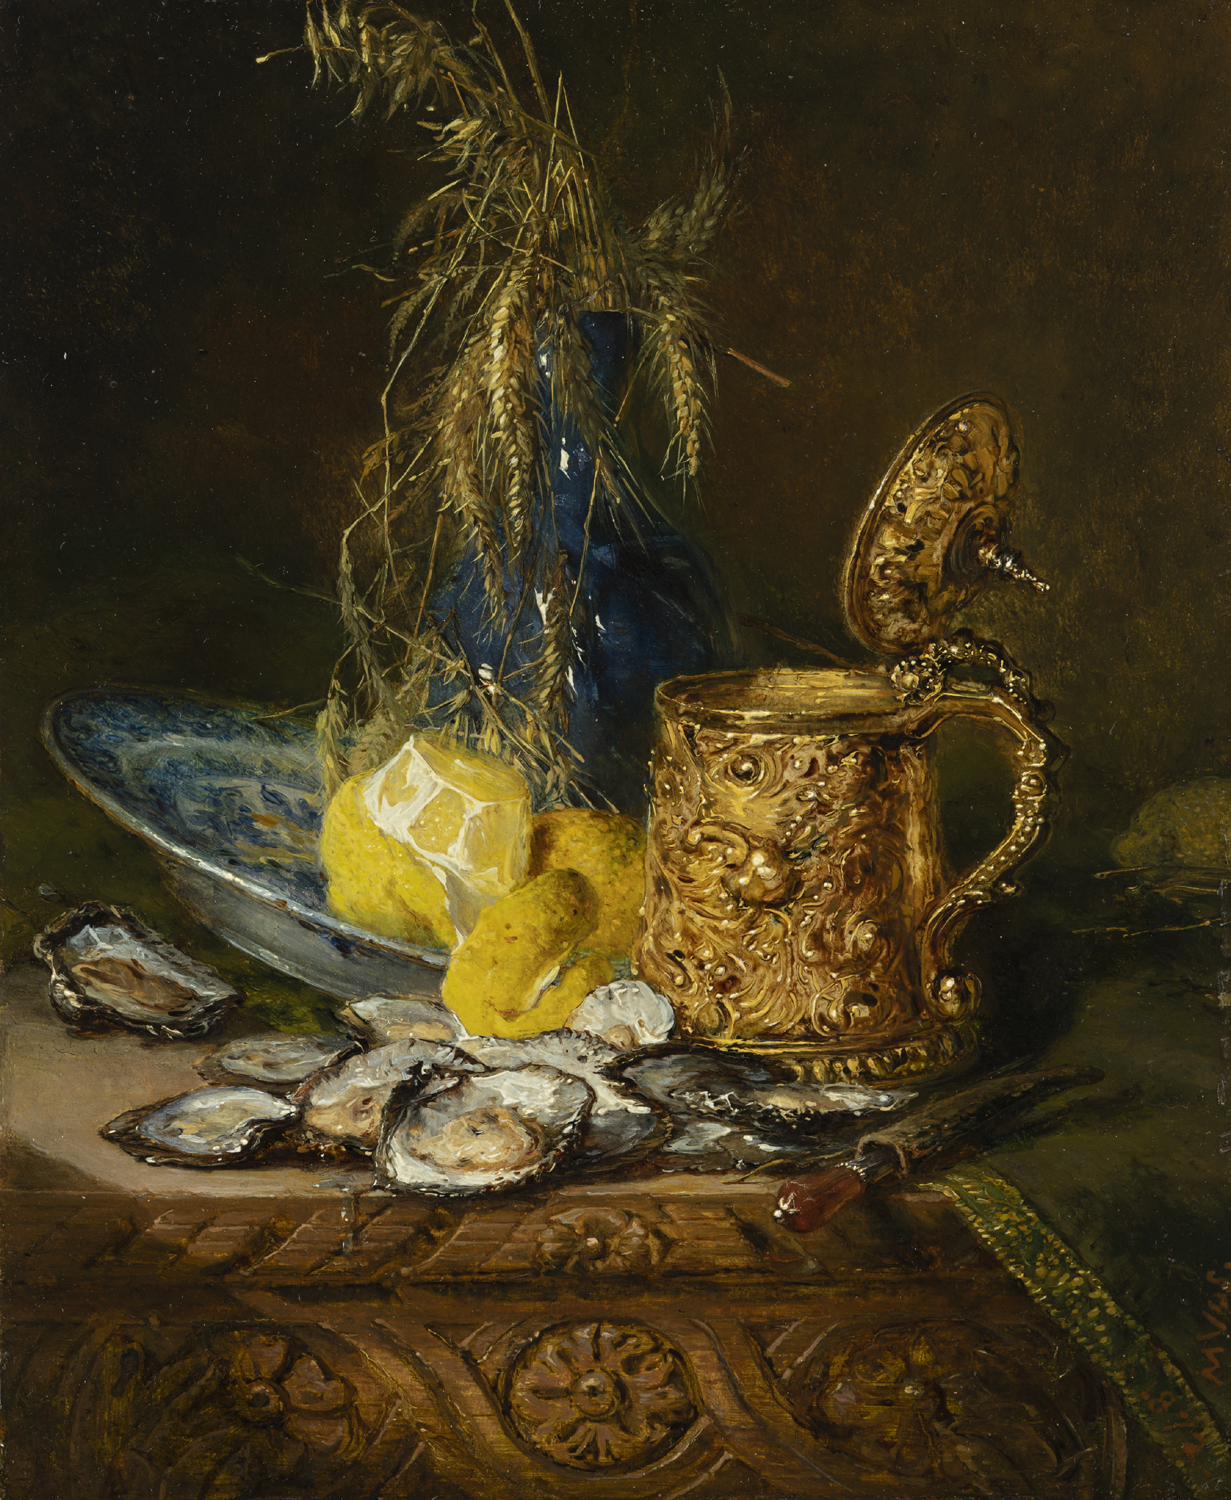 Maria Vos | A still life with oisters, lemon and a lidded jug | Kunsthandel Bies | Bies Gallery